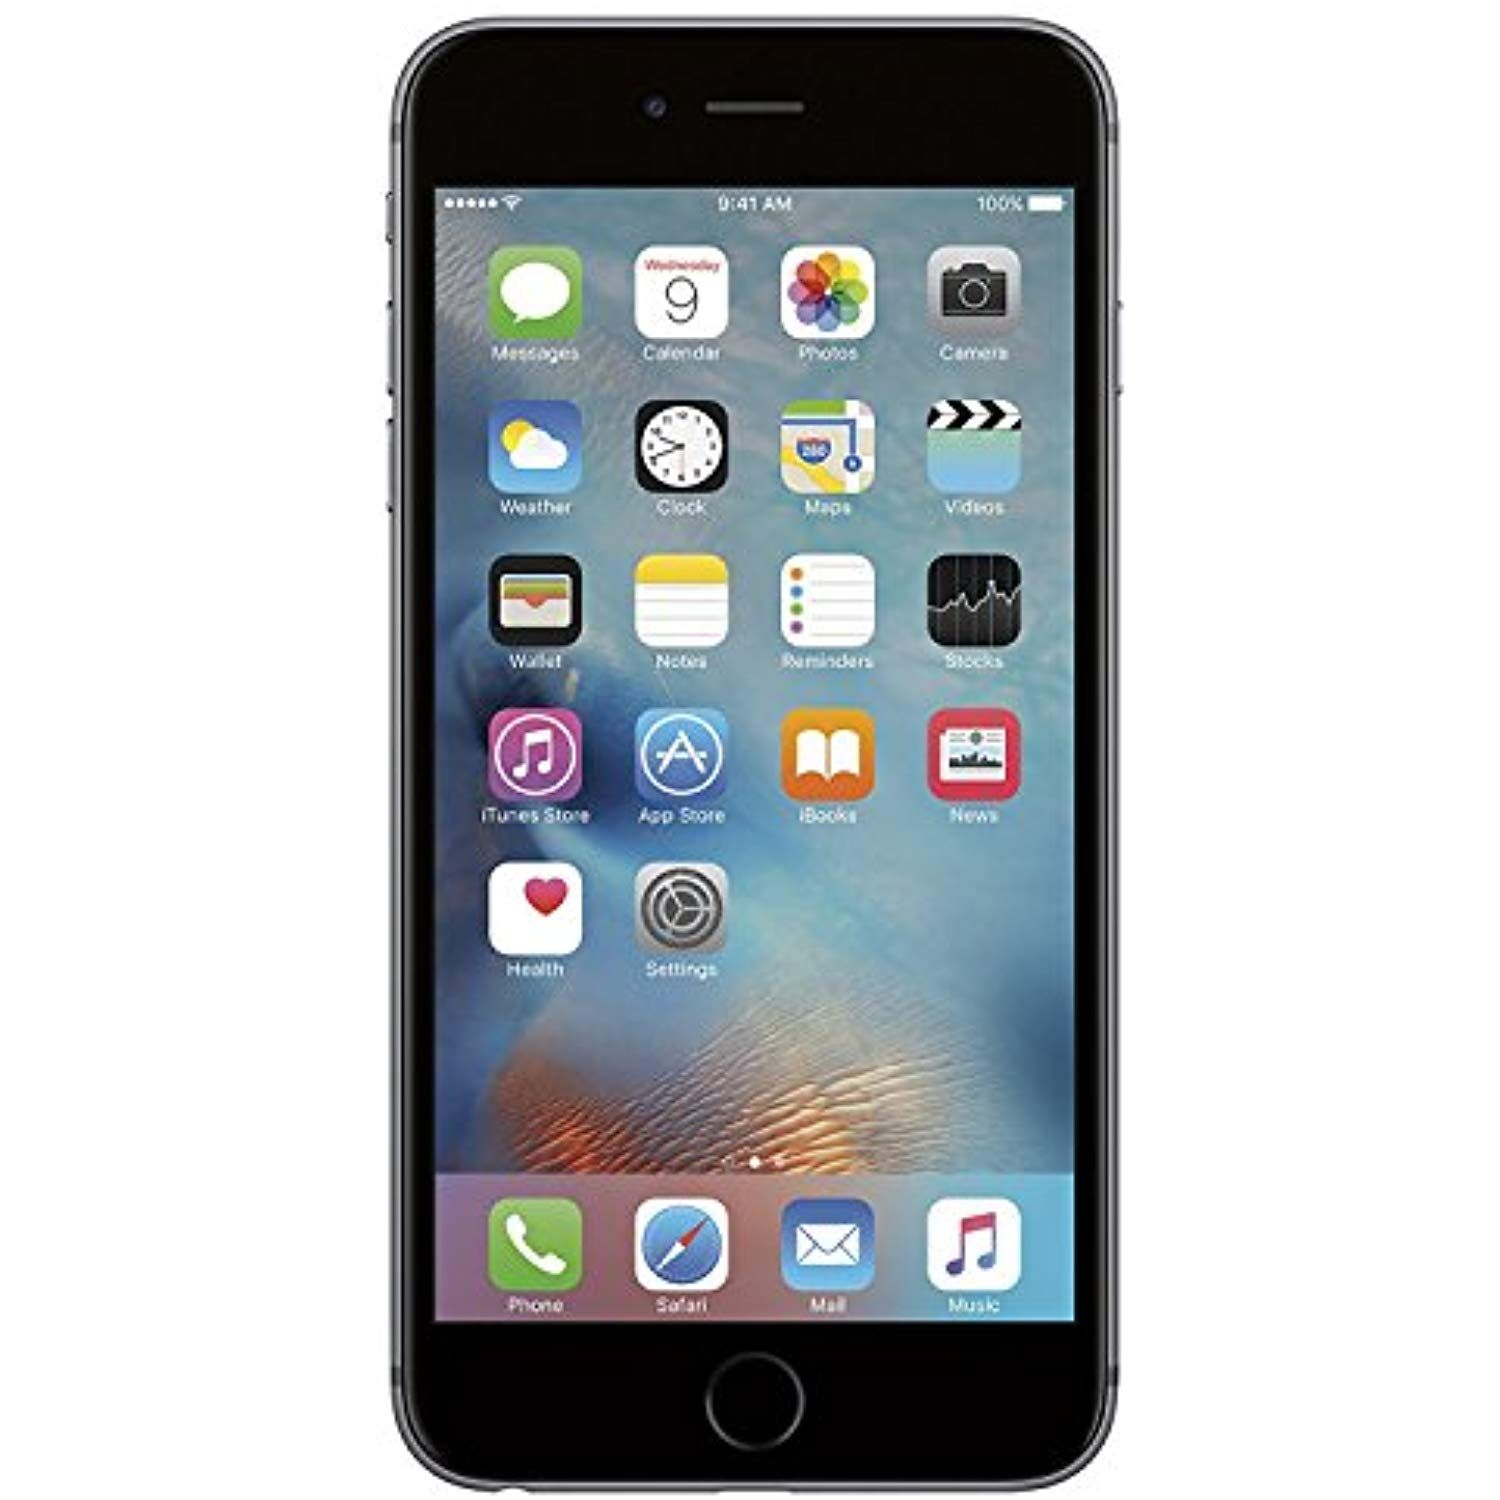 Apple Iphone 6s Plus 64 Gb T Mobile Space Grey See This Great Product This Is An Affiliate Link Apple Iphone 6s Plus Apple Iphone 6s Iphone